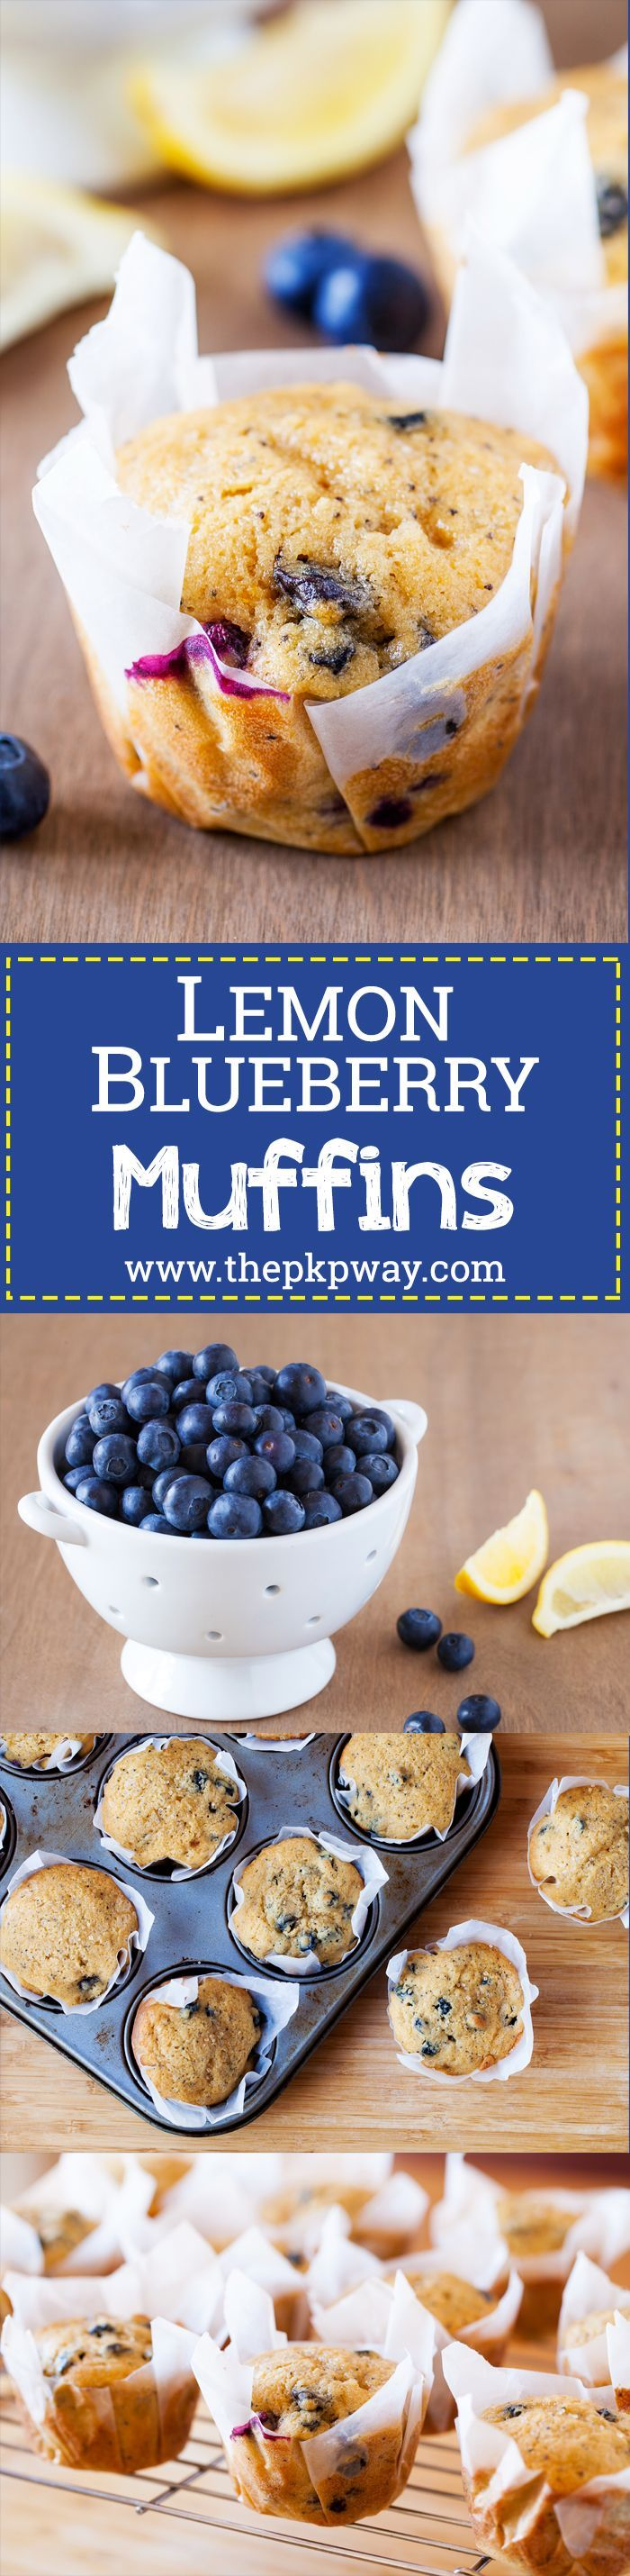 These blueberry lemon muffins are ultra moist, have a punch of  lemon flavor, and pops of juicy blueberries in every bite.